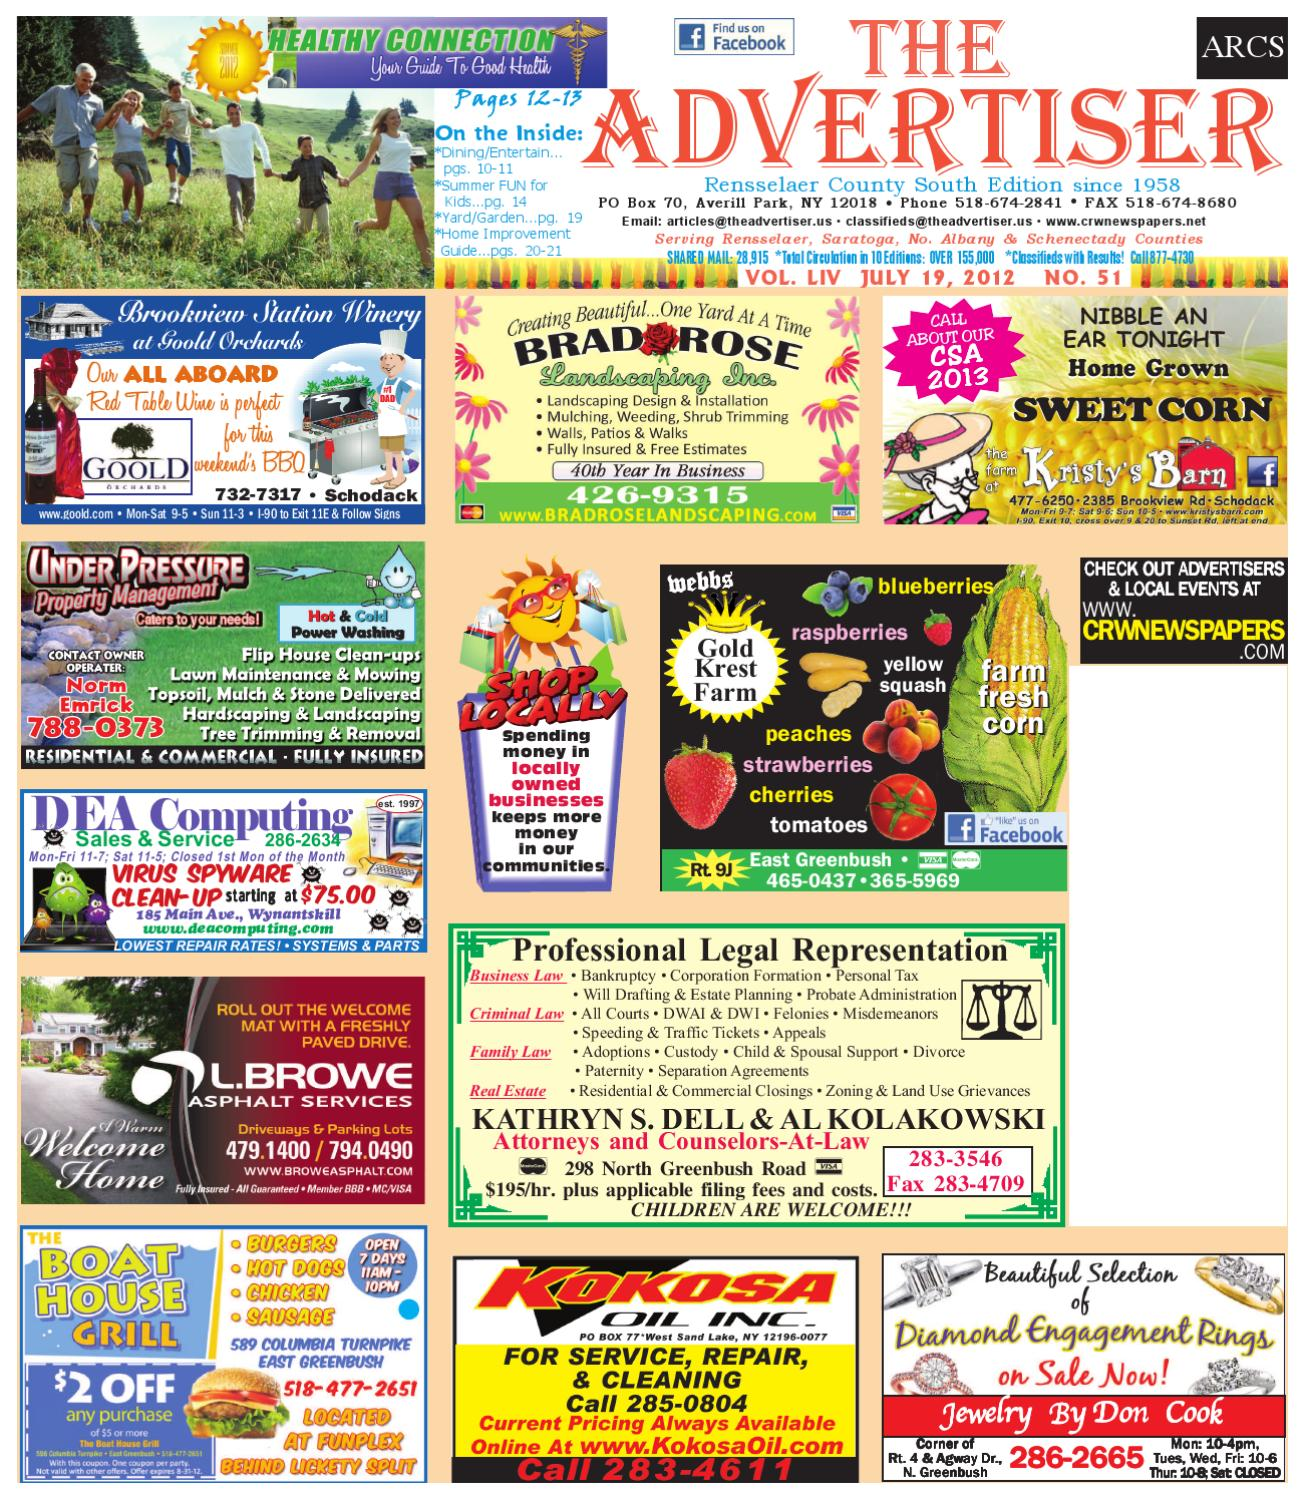 Advertiser South 071912 By Capital Region Weekly Newspapers Issuu Tony Perotti Loafers Archibald Brown